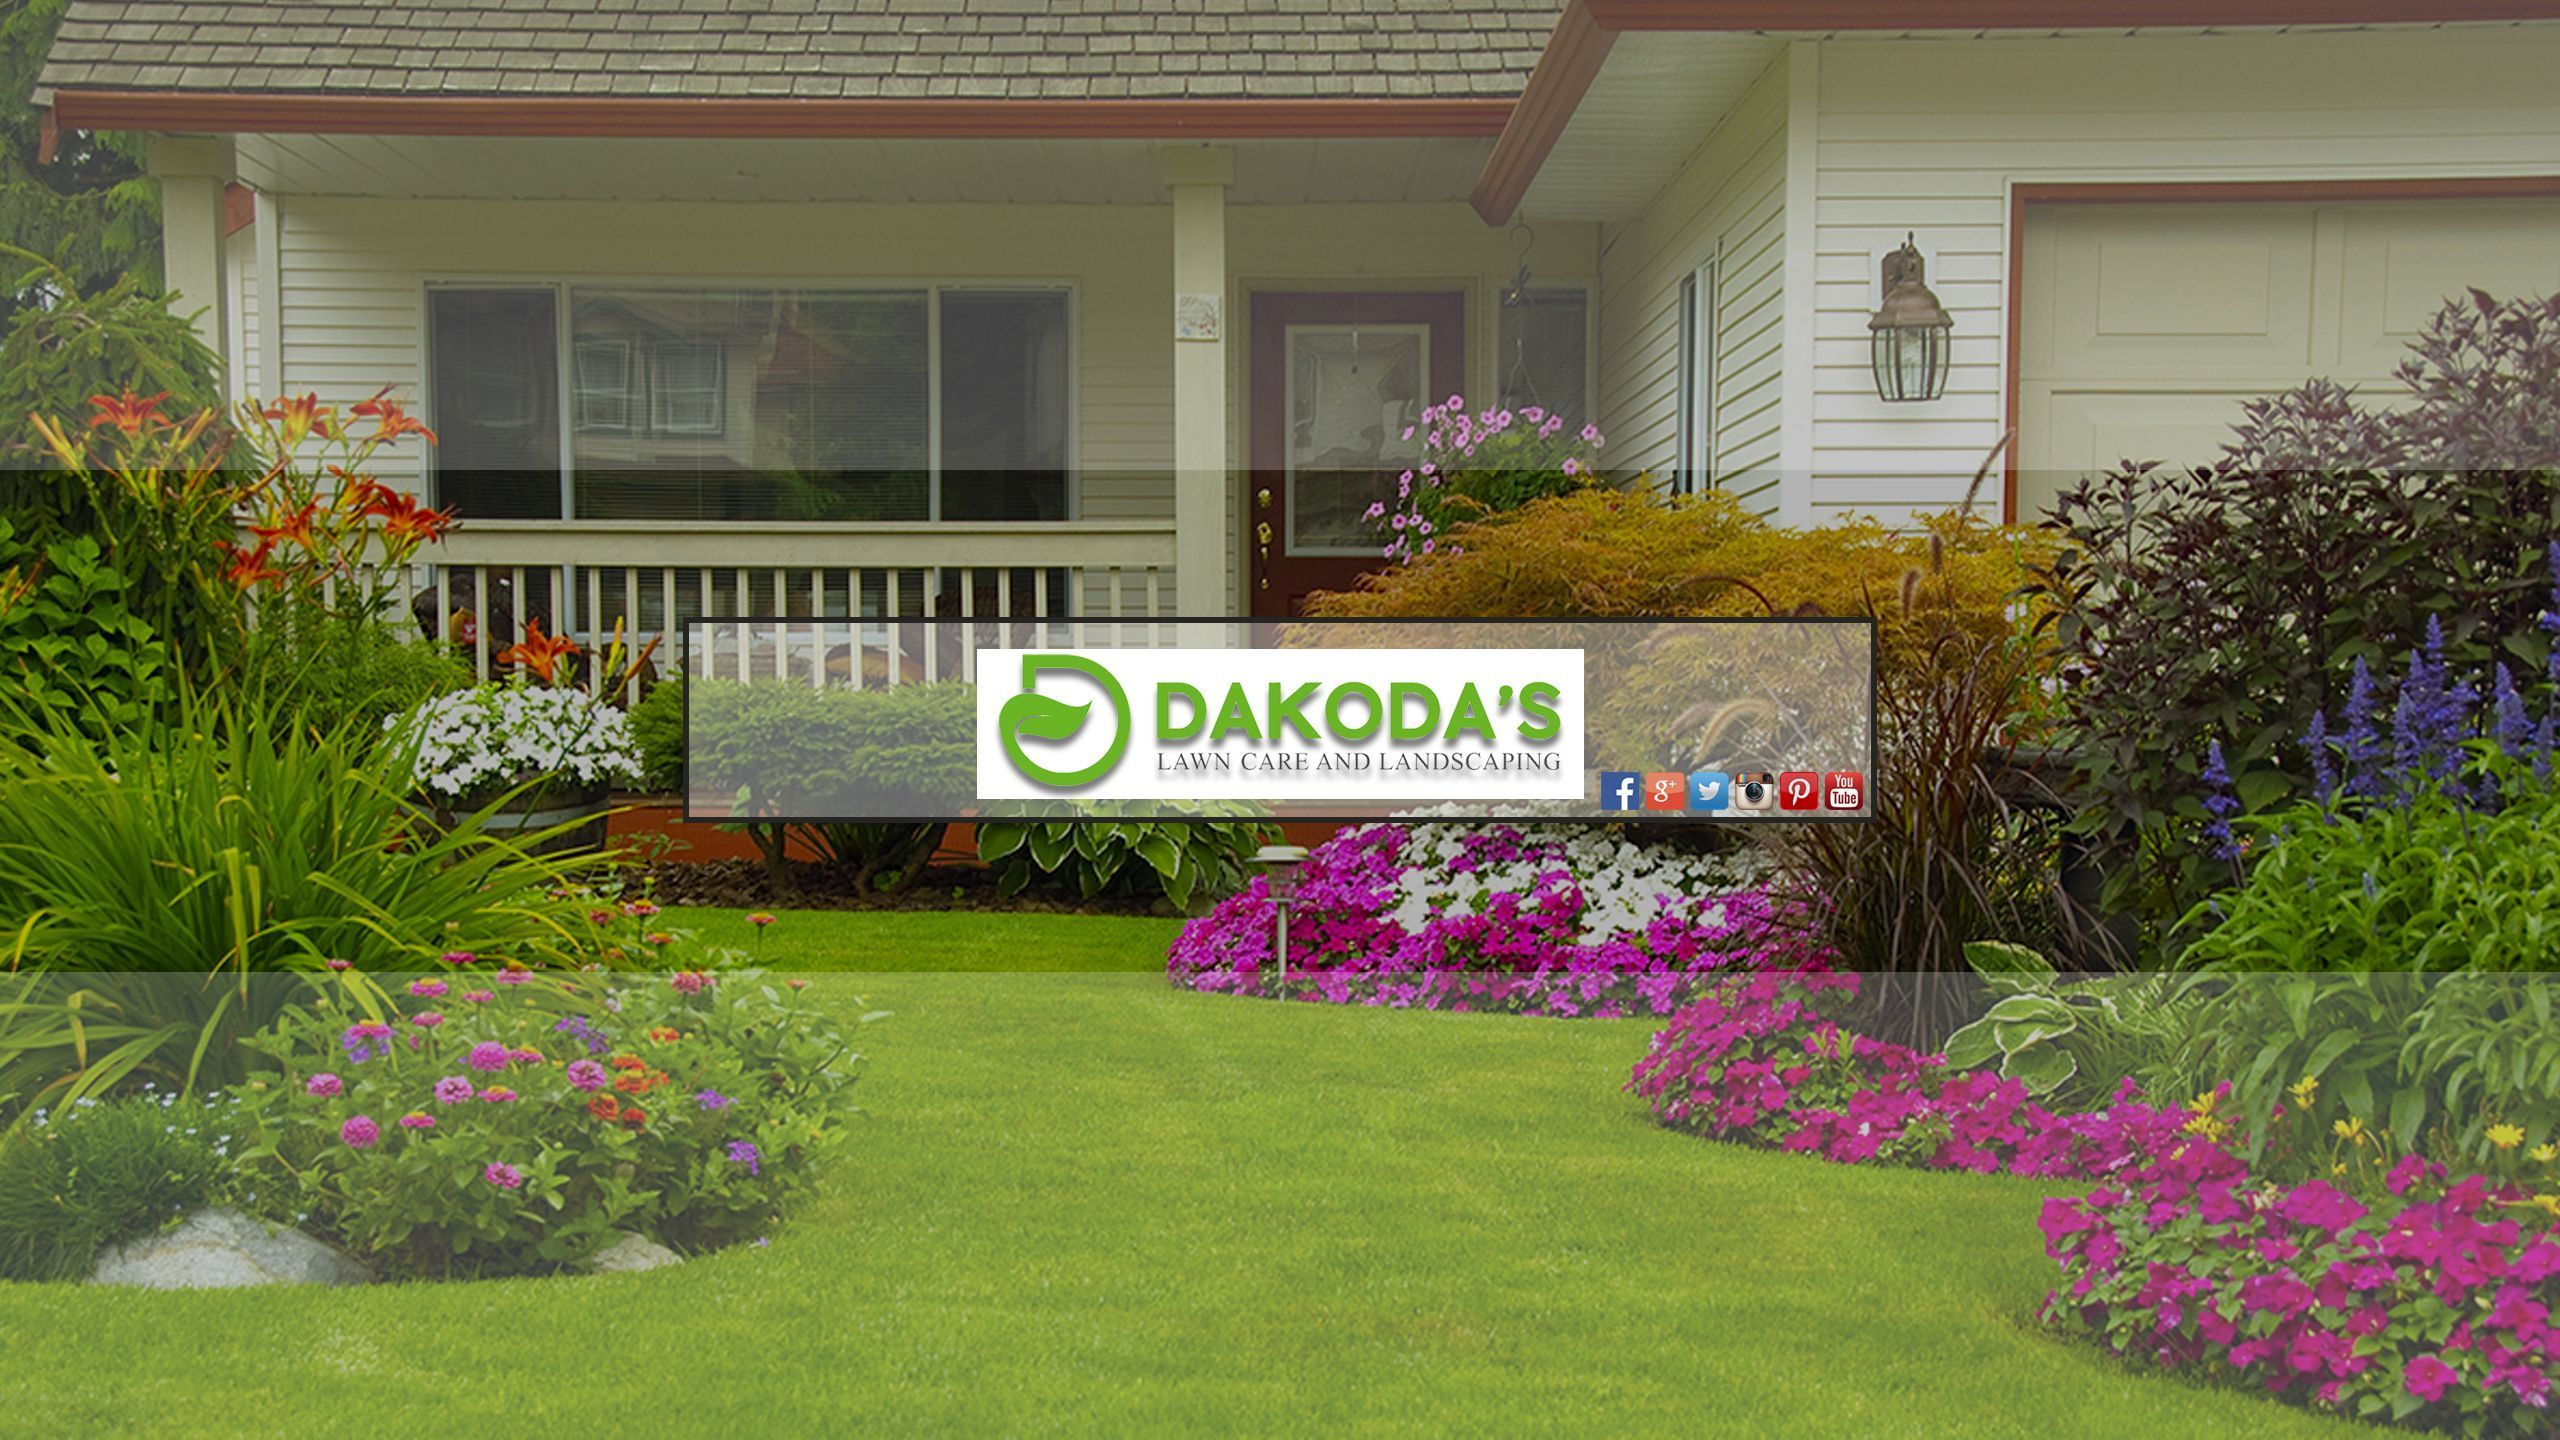 Dakodas Lawn Care And Landscaping Is A Landscaping Service In